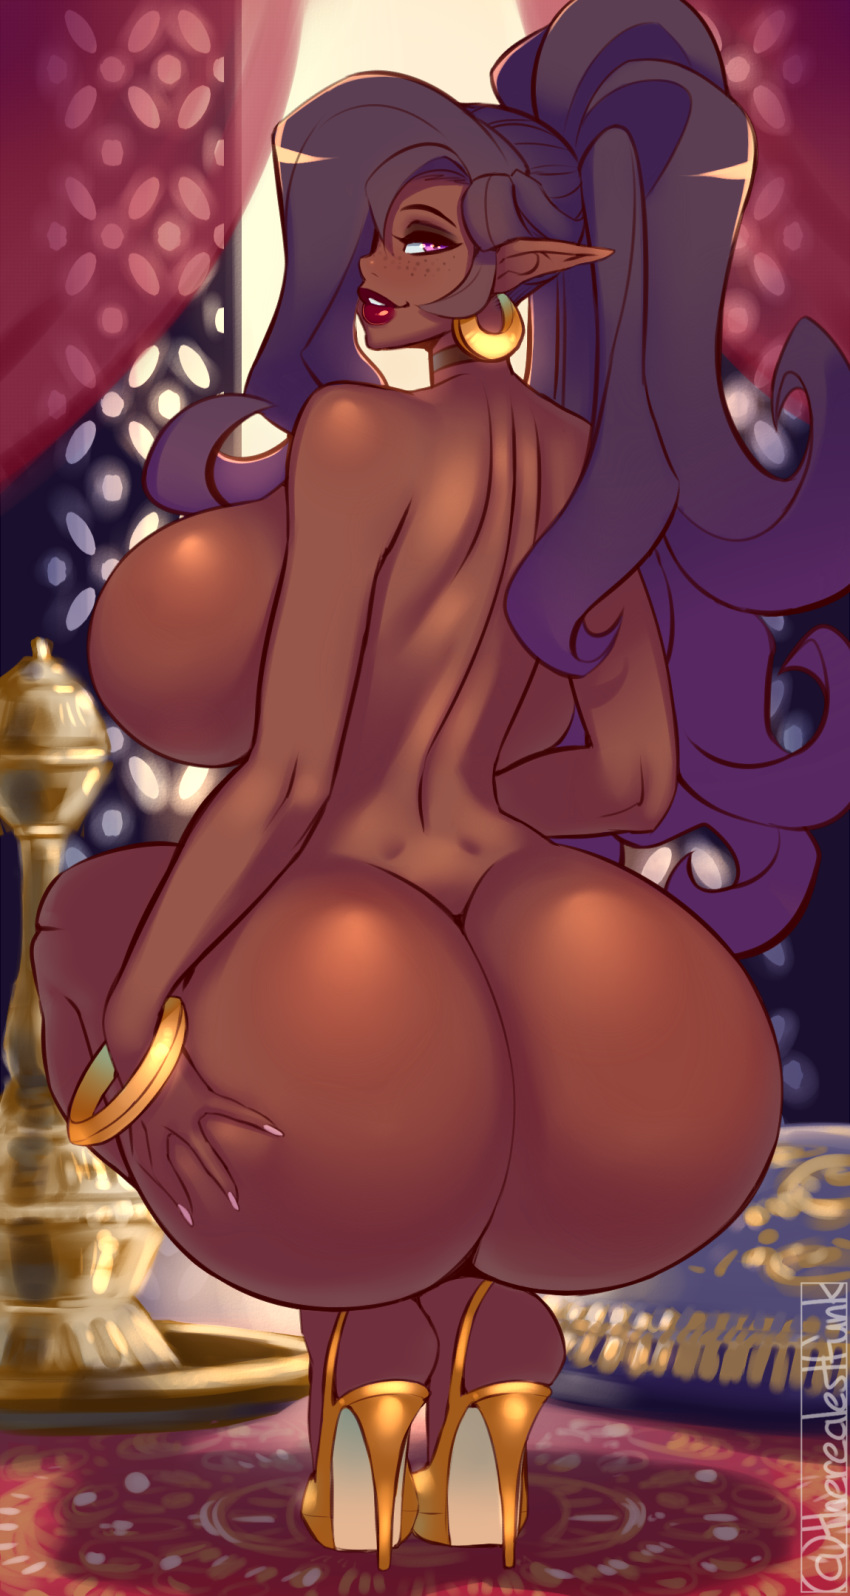 queen for butt a slug Black skinned anime girl with afro